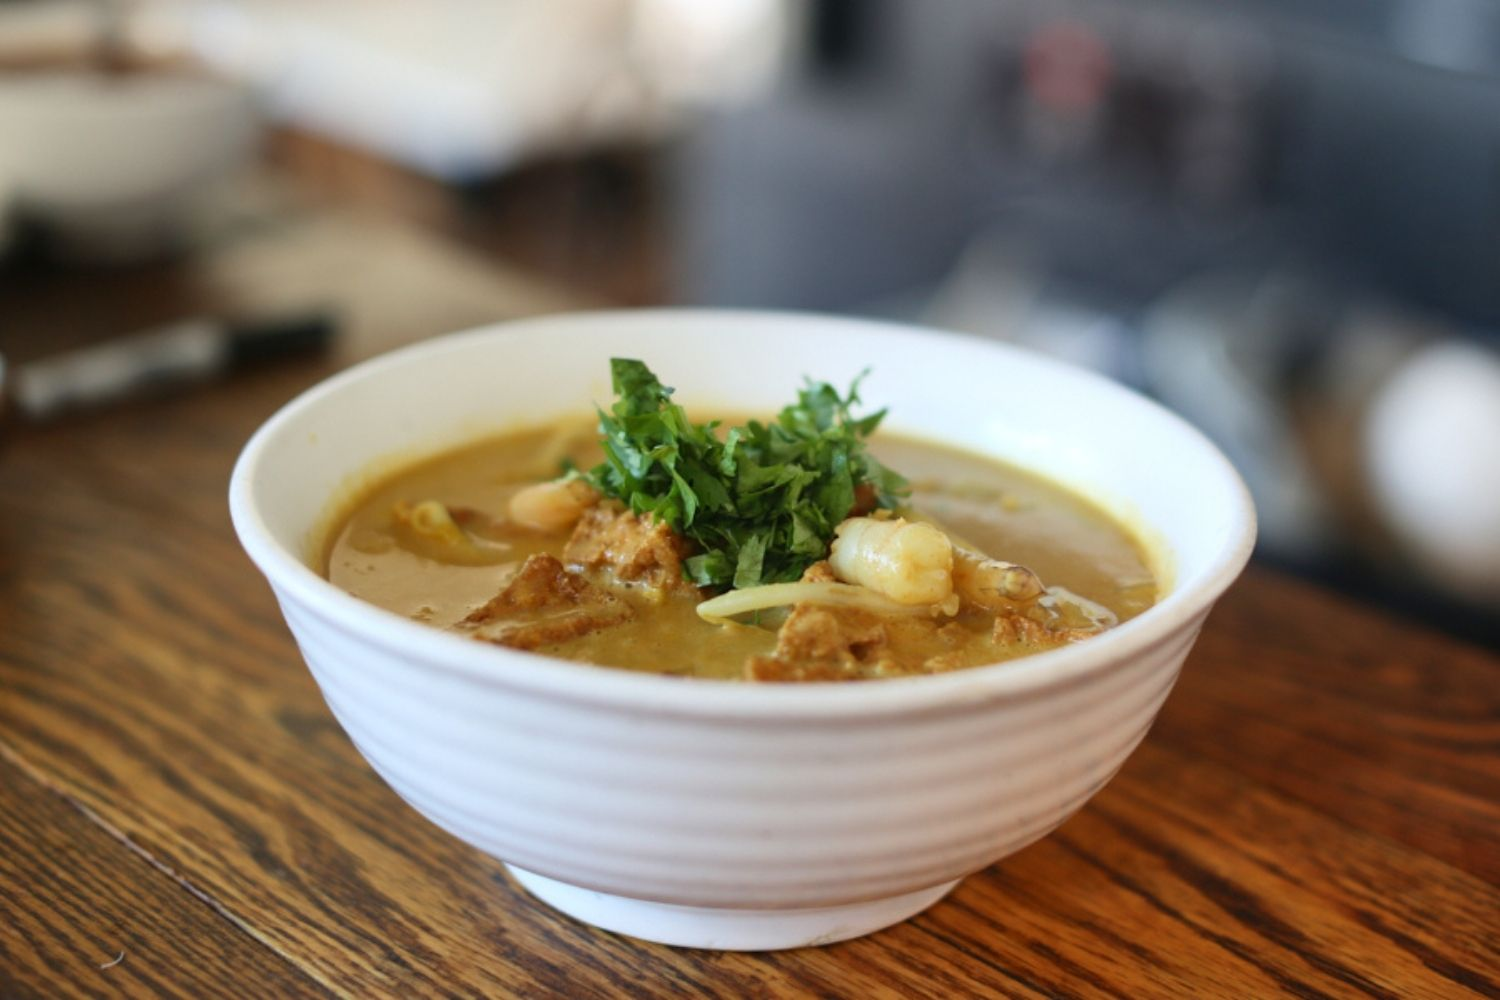 Laksa from the Spice Jar